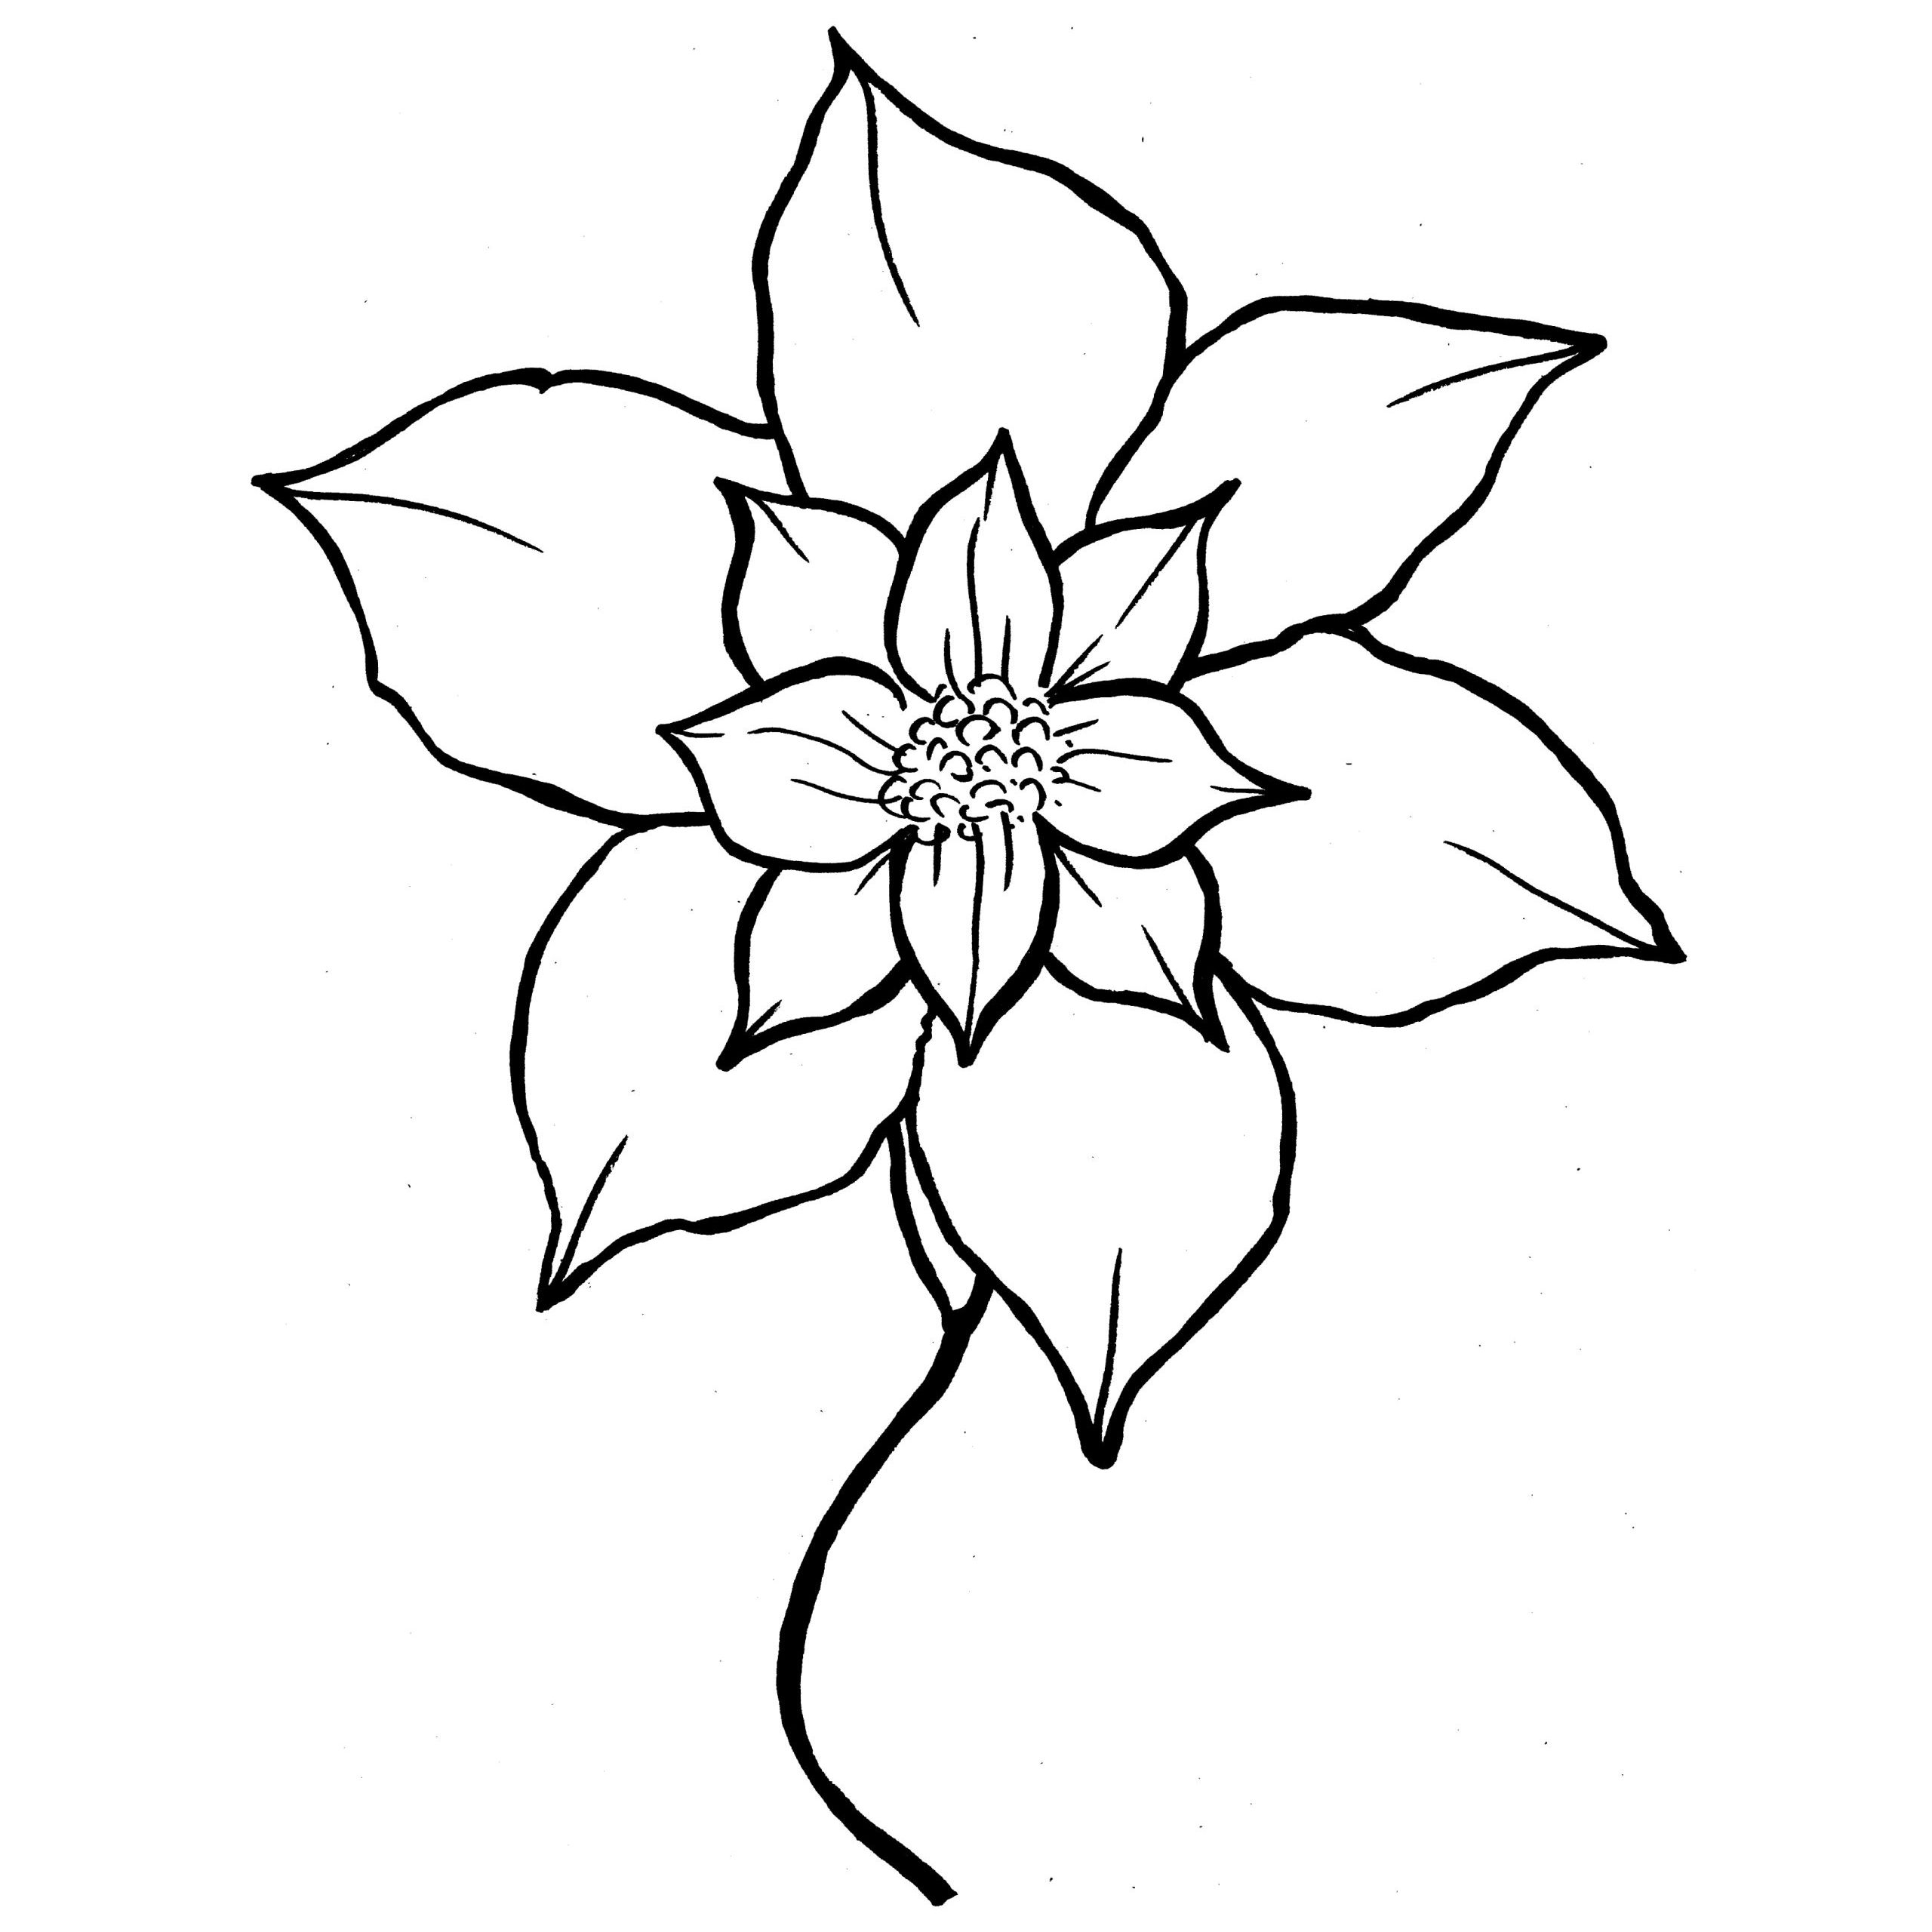 poinsettia coloring page - poinsettia